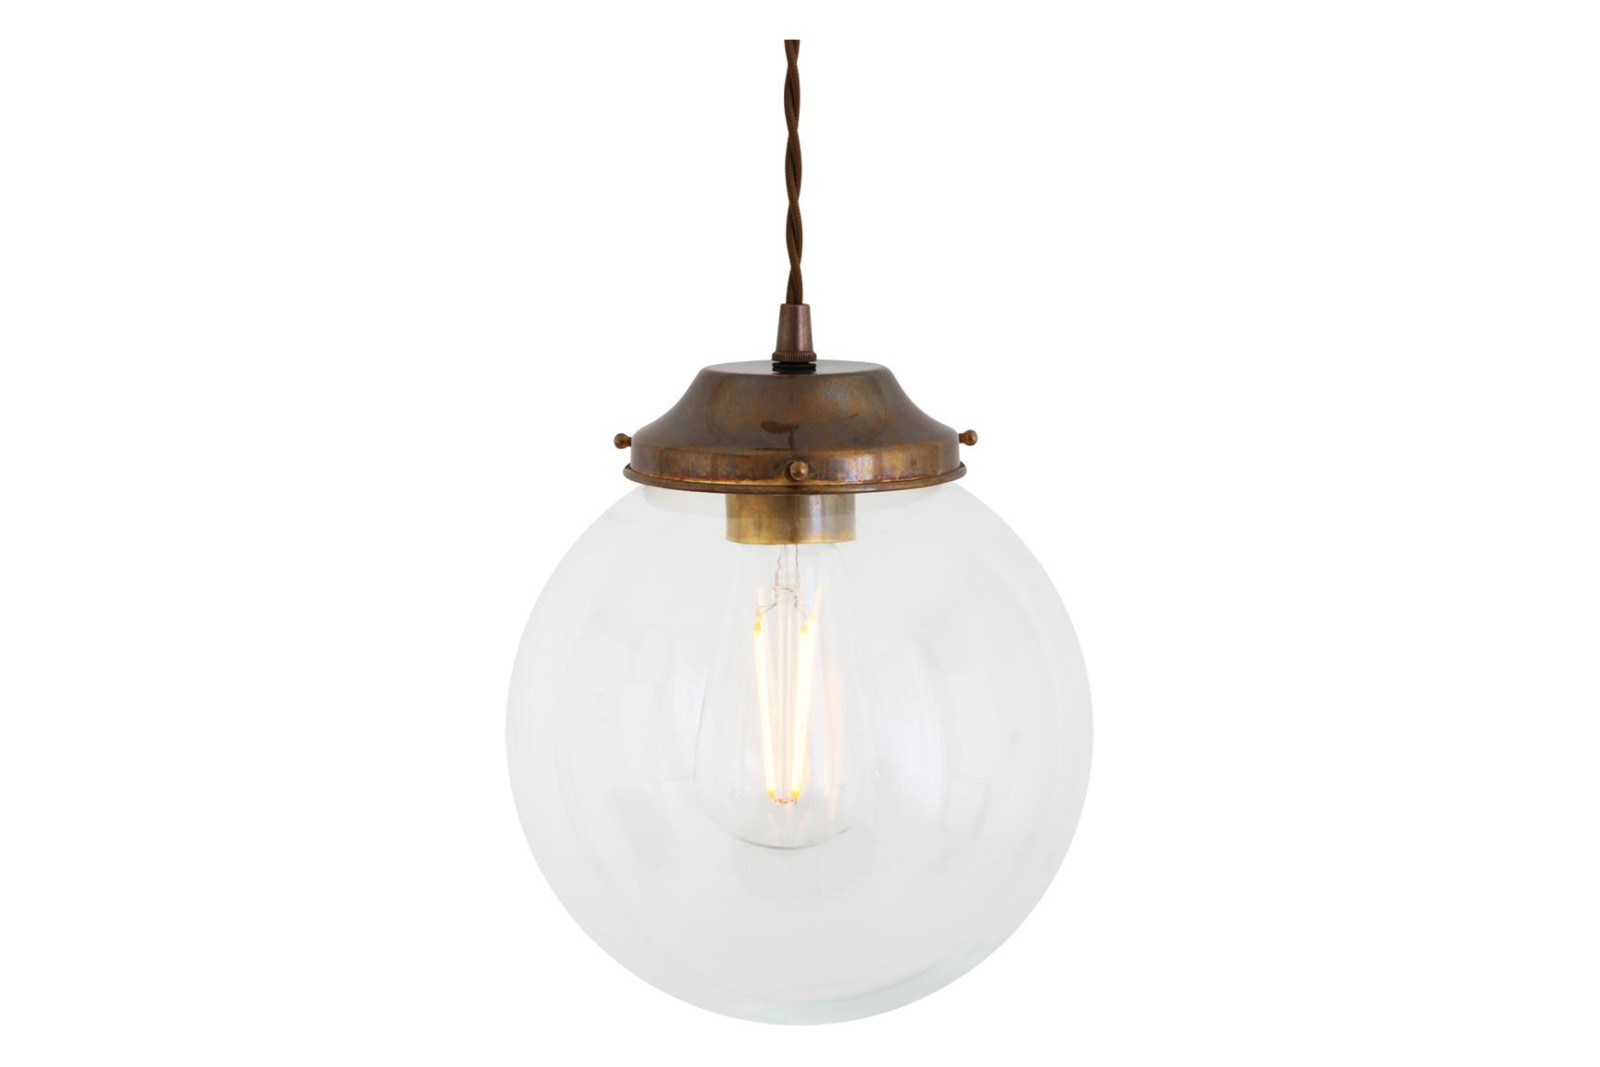 Virginia Clear Globe Pendant Light Antique Brass, 20cm